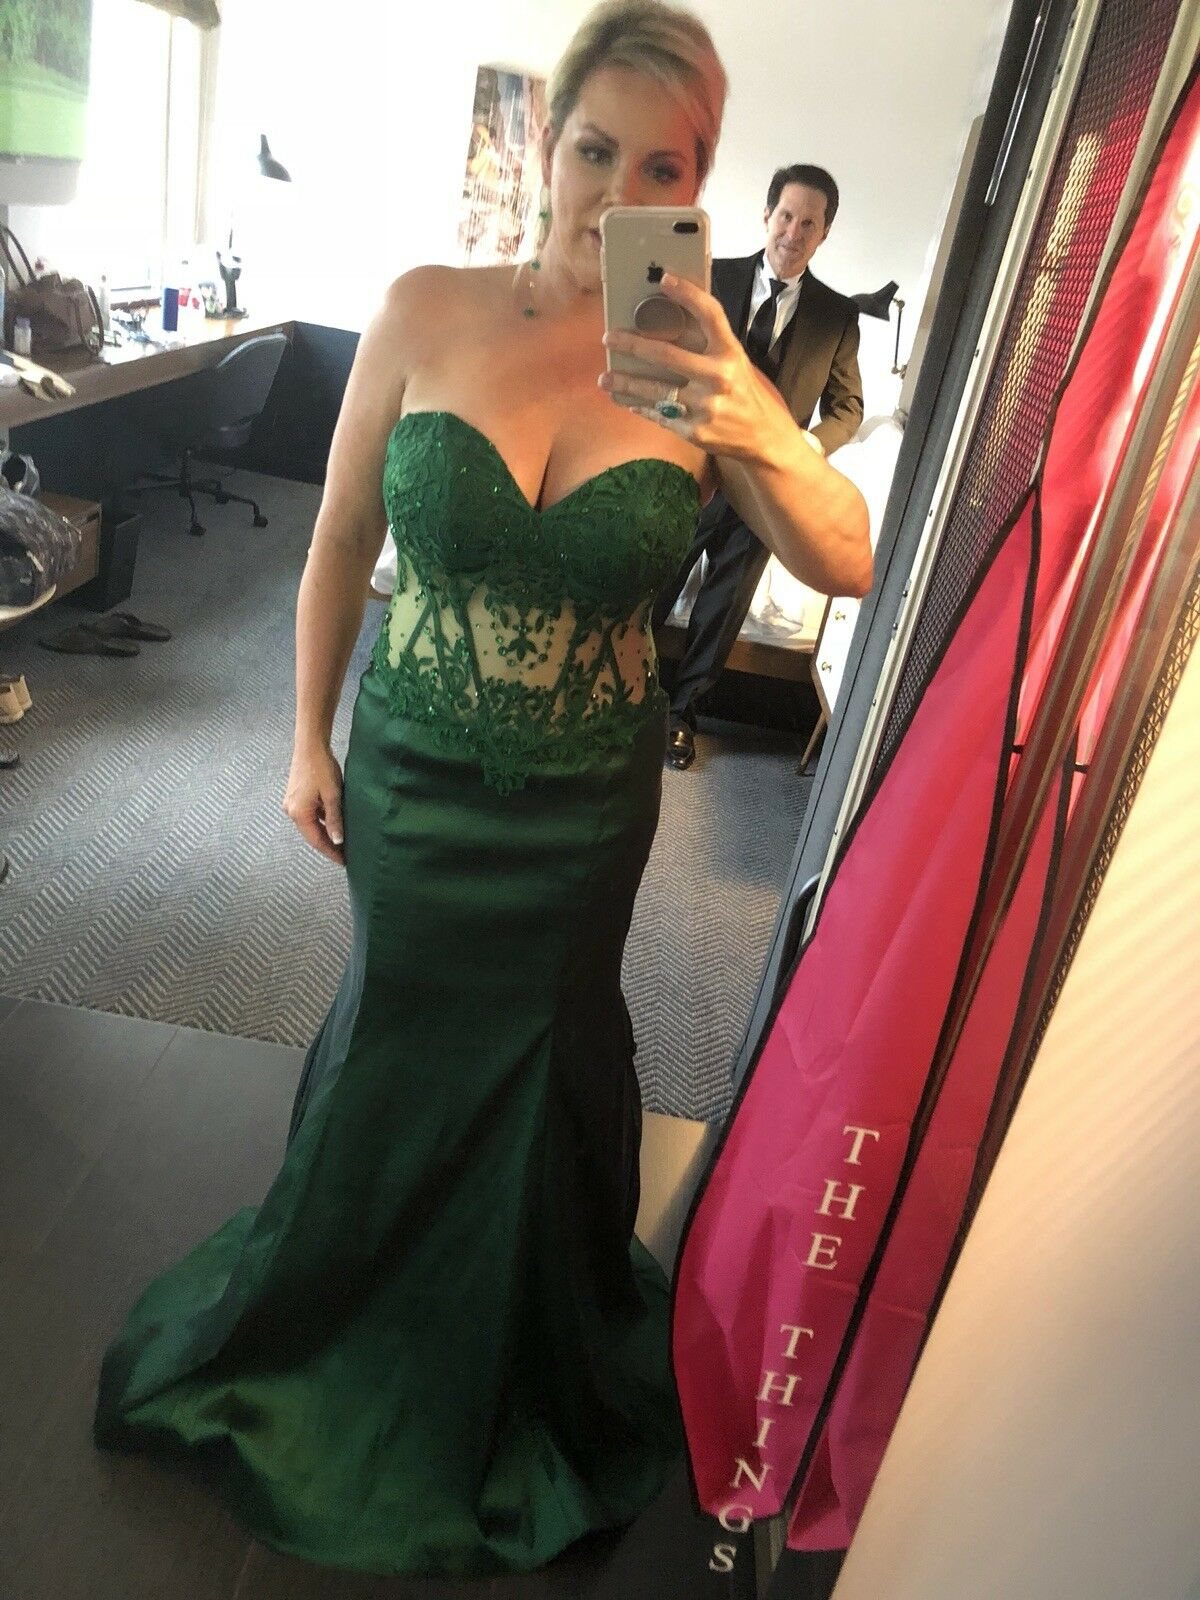 Emerald Green Formal Dress Runs Large  I normally wear an 8 and this is a 14.